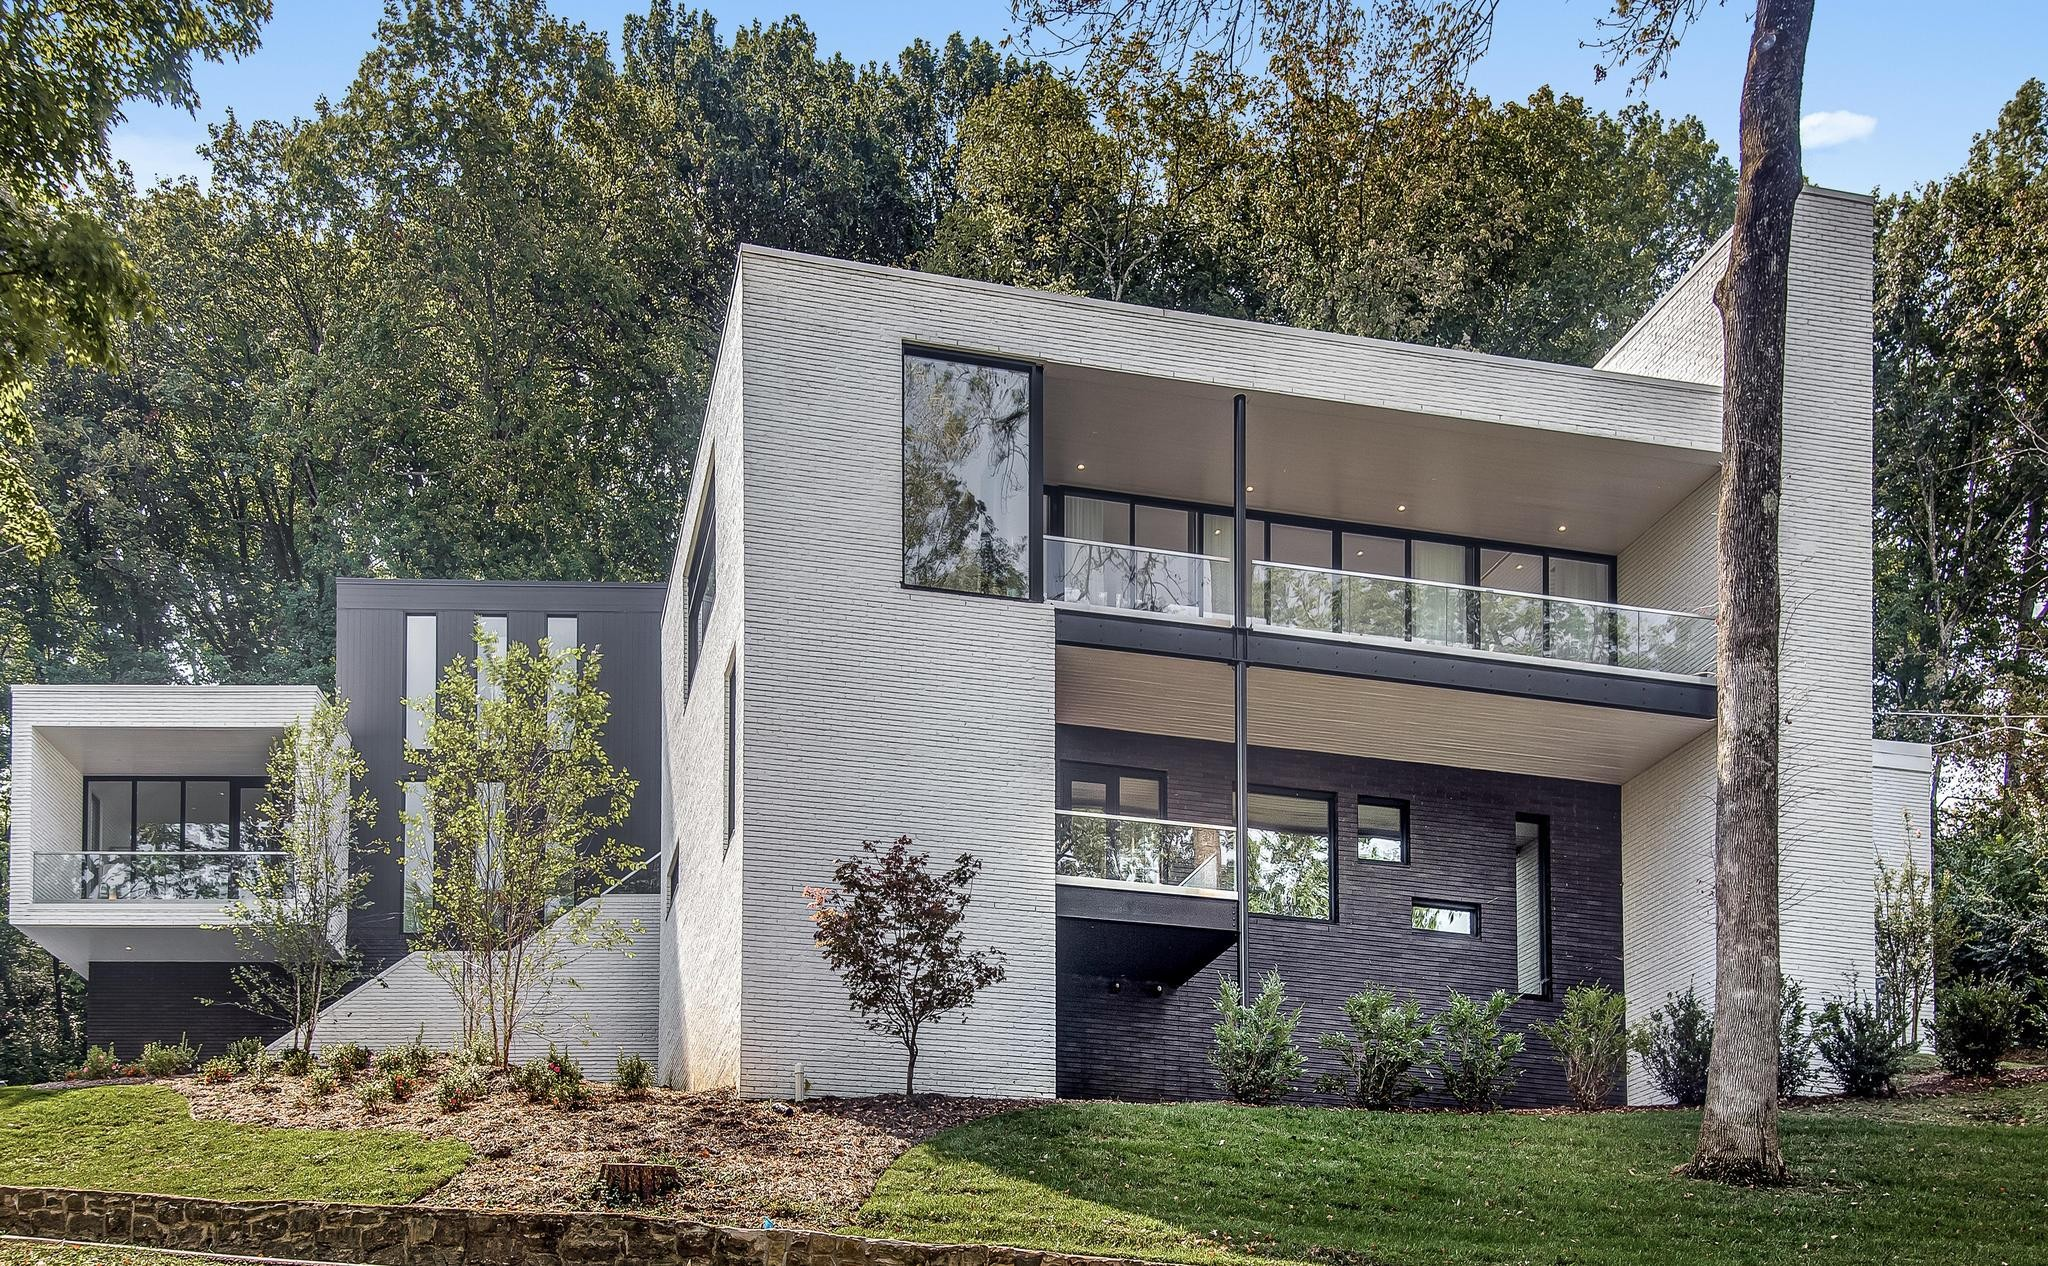 A once in a lifetime opportunity. 2019's top contemporary New Build perched atop a 1.4 acre hillside in Green Hills. Green views by day & twinkling city lights at night. Open concept 8,400 ft. on three levels / 3 car garage, amazing outdoor entertaining spaces. Walls of commercial glass windows,15' ceilings & deep set clerestory windows accenting a sumptuous main level gathering area. Top of the line Sub Zero, Wolf appliances, impeccable finishes. Price improvement is far below recent appraisal.